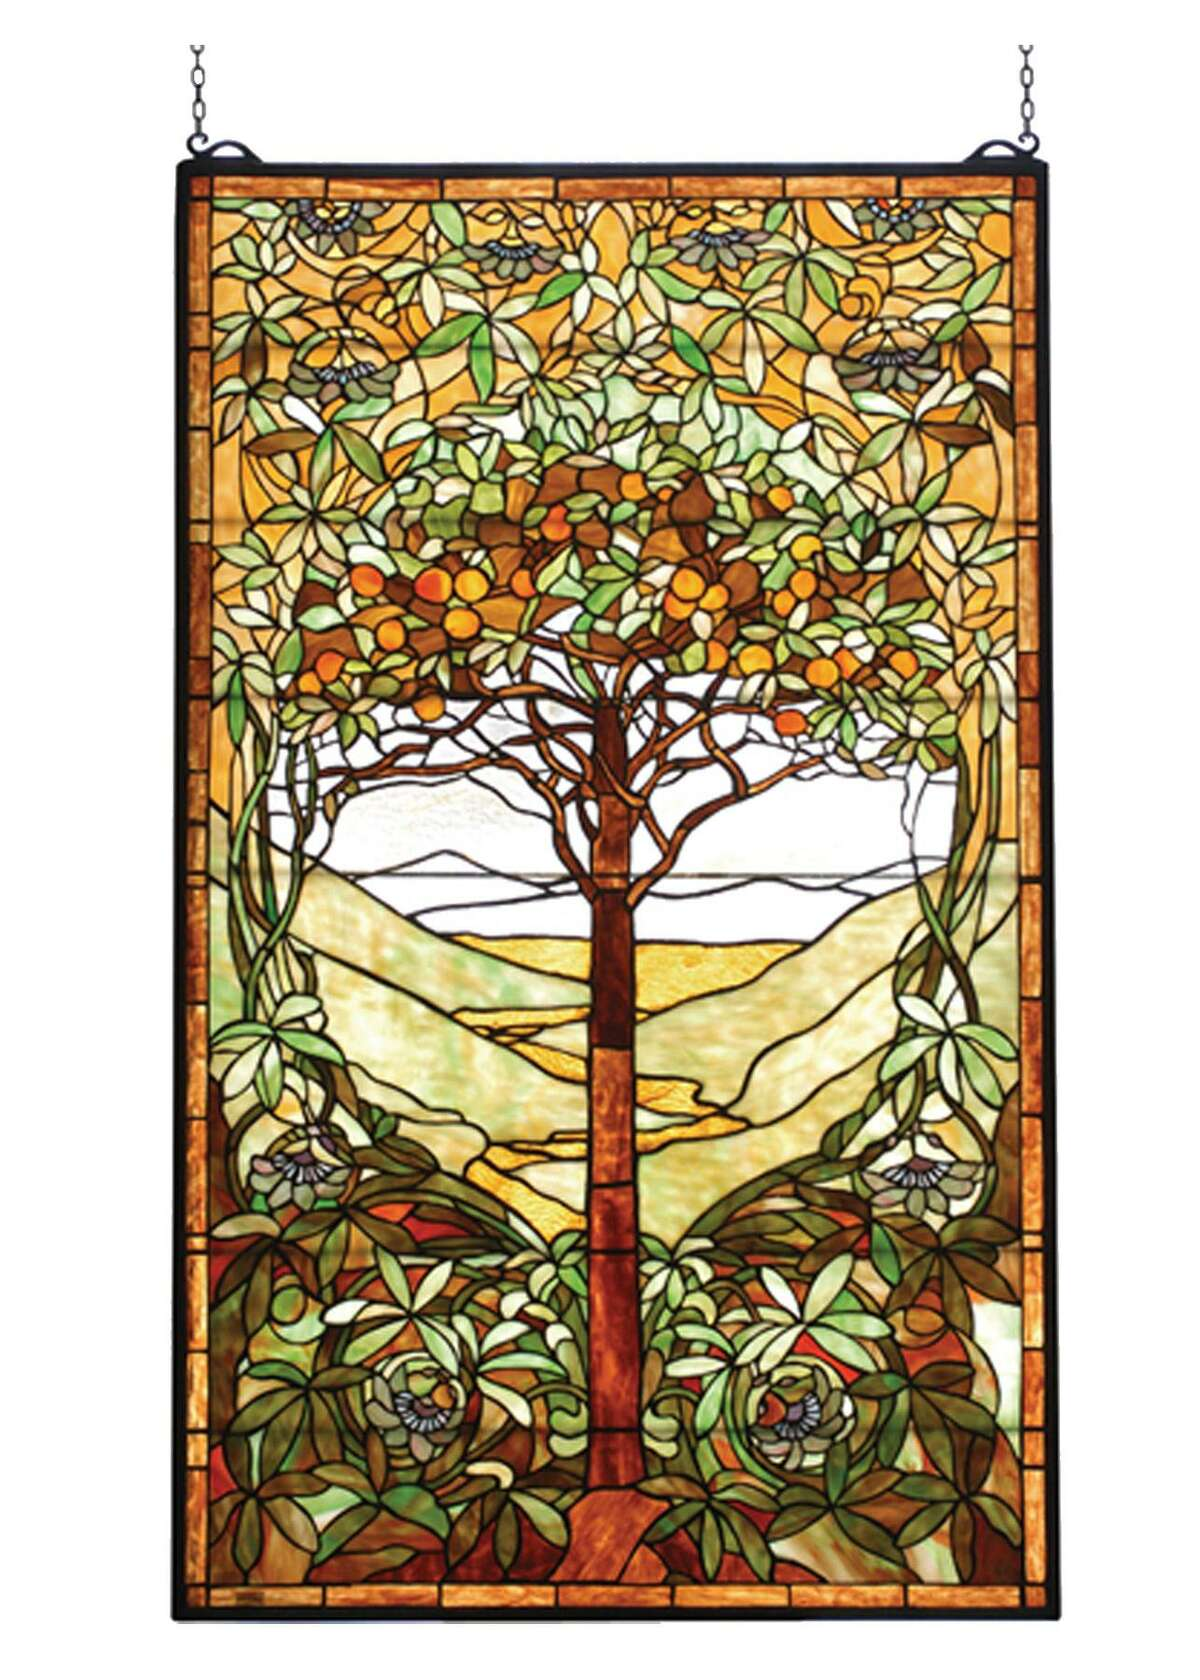 From the earliest archaeological evidence of glass making dating to 3500 BC to the glorious medieval stained glass of Europe to the decline of stained glass between the Renaissance and the mid-19th century, the story of this marvelous material is the topic of a Stained Glass Workshop for Kids.